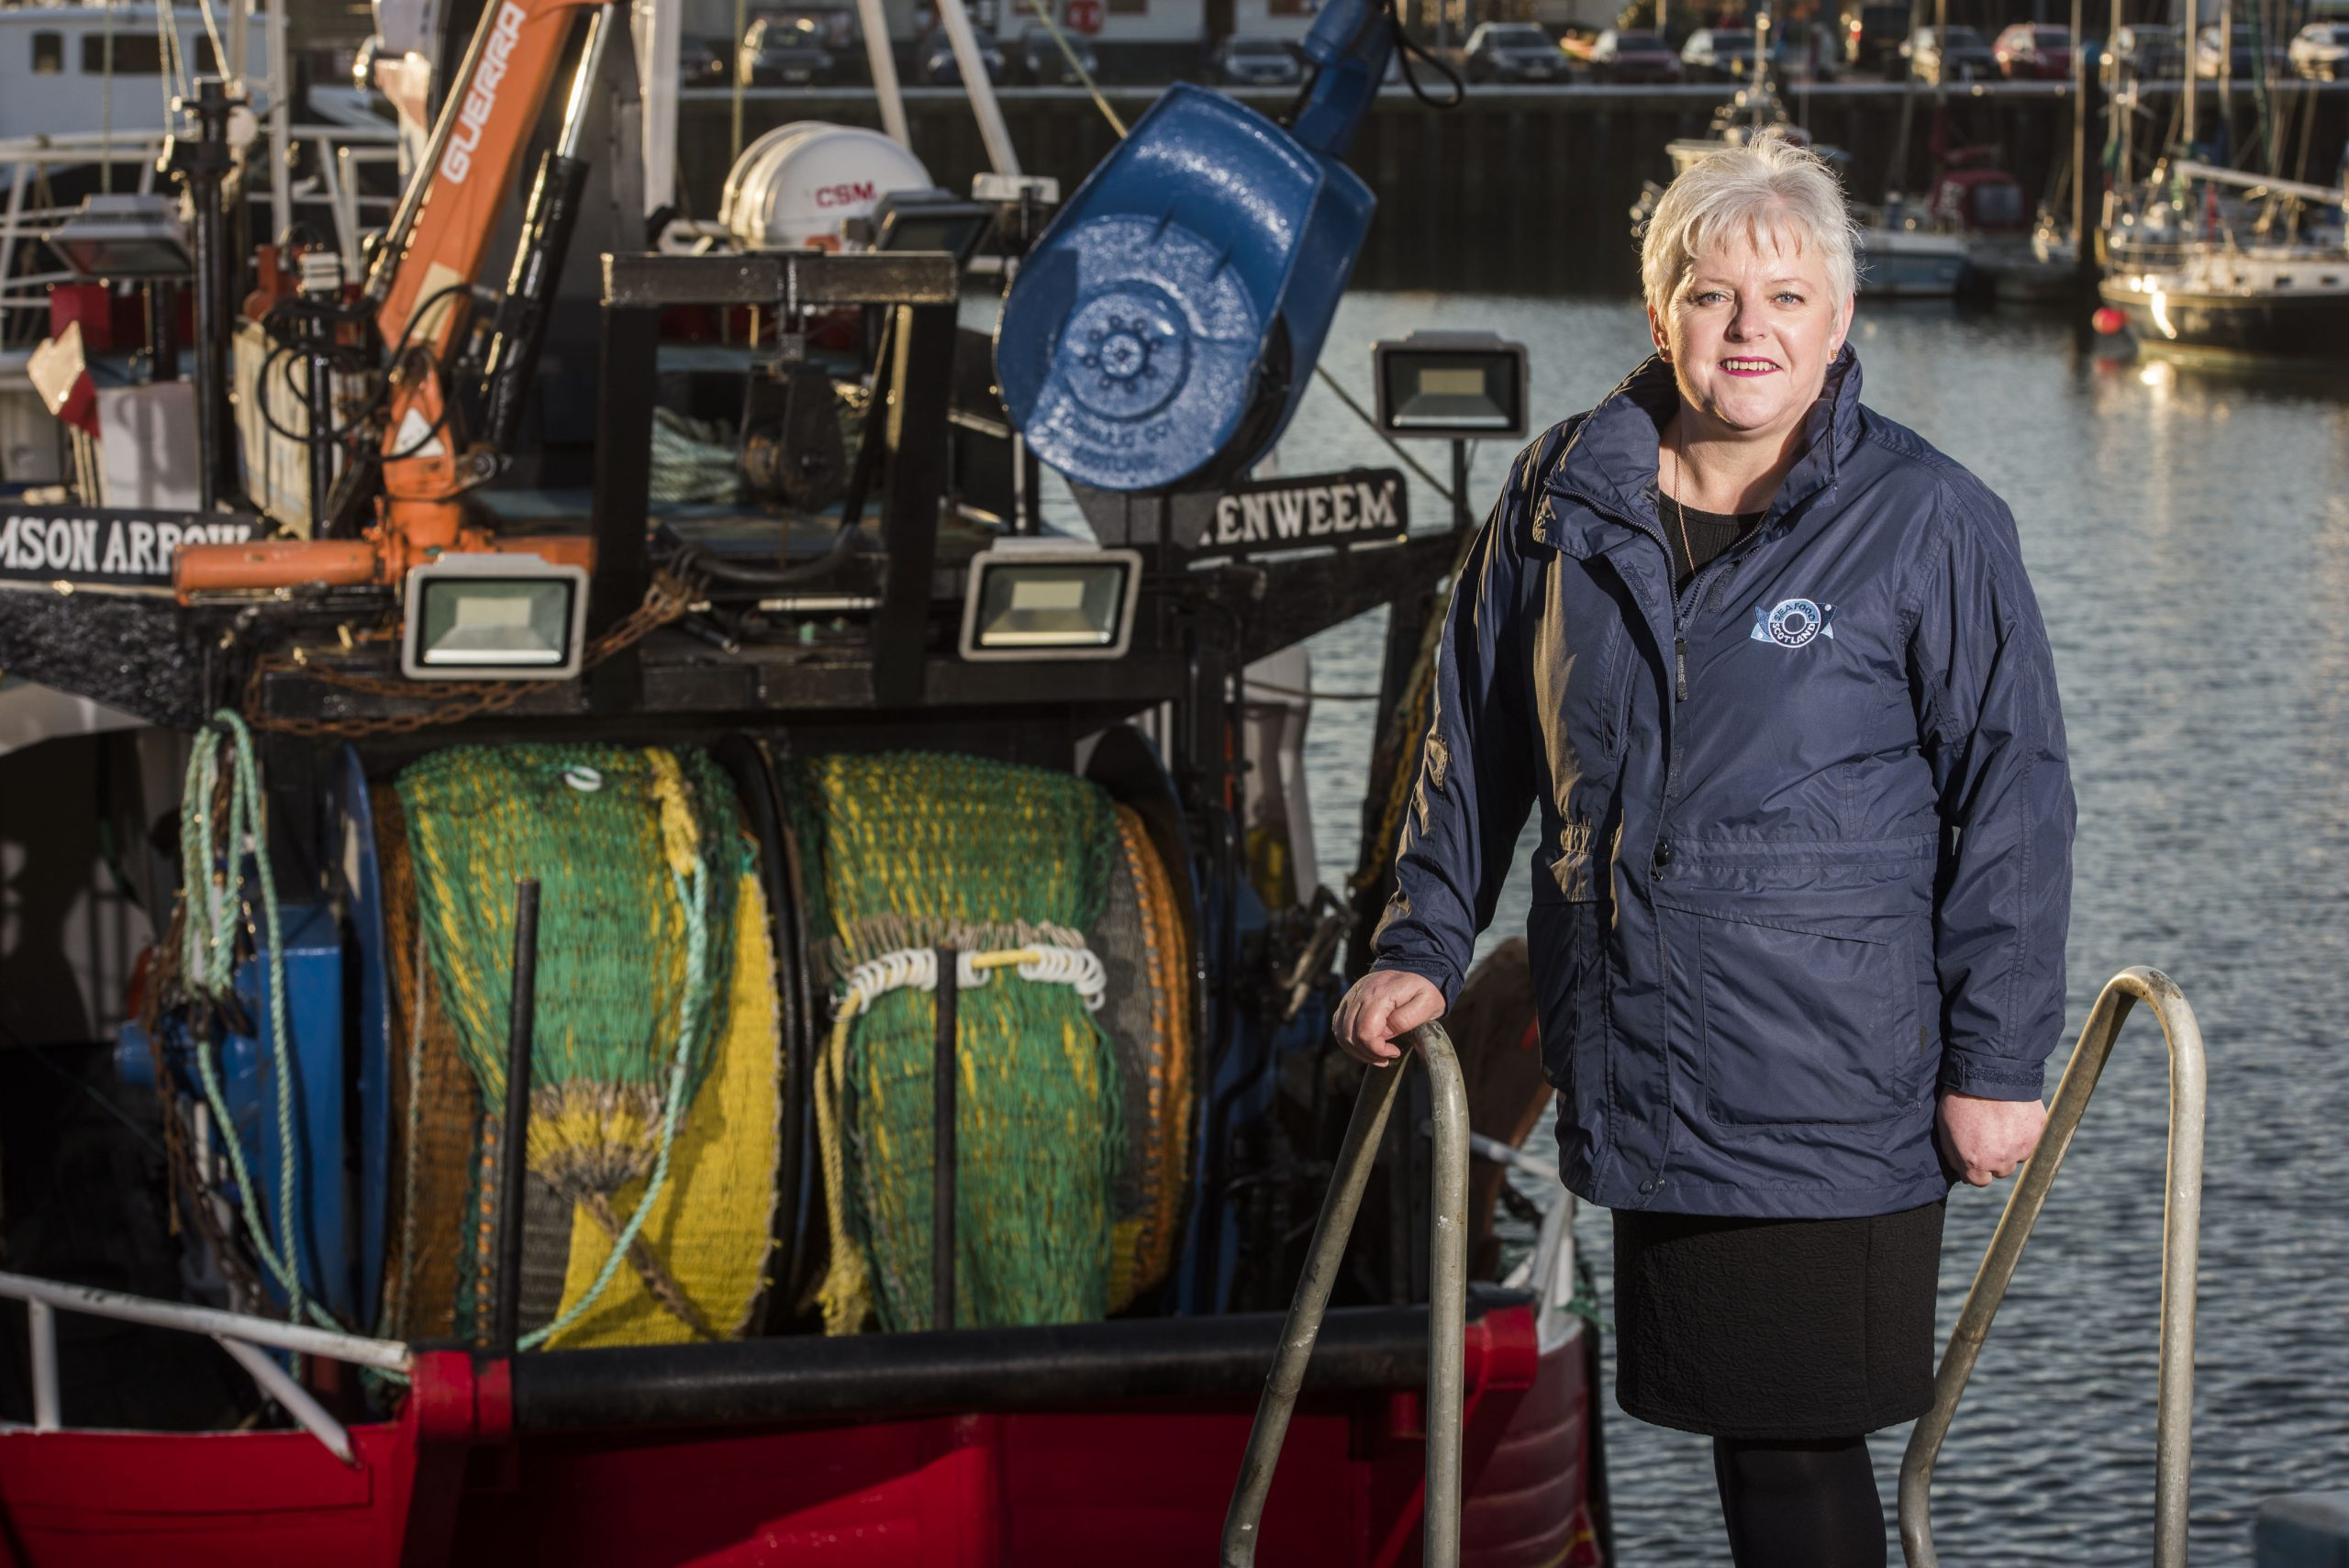 Seafood Scotland Chief Executive, Donna Fordyce has welcomed the Government's announcement of a Scottish Seafood Taskforce but has warned that the industry needs real solutions quickly.